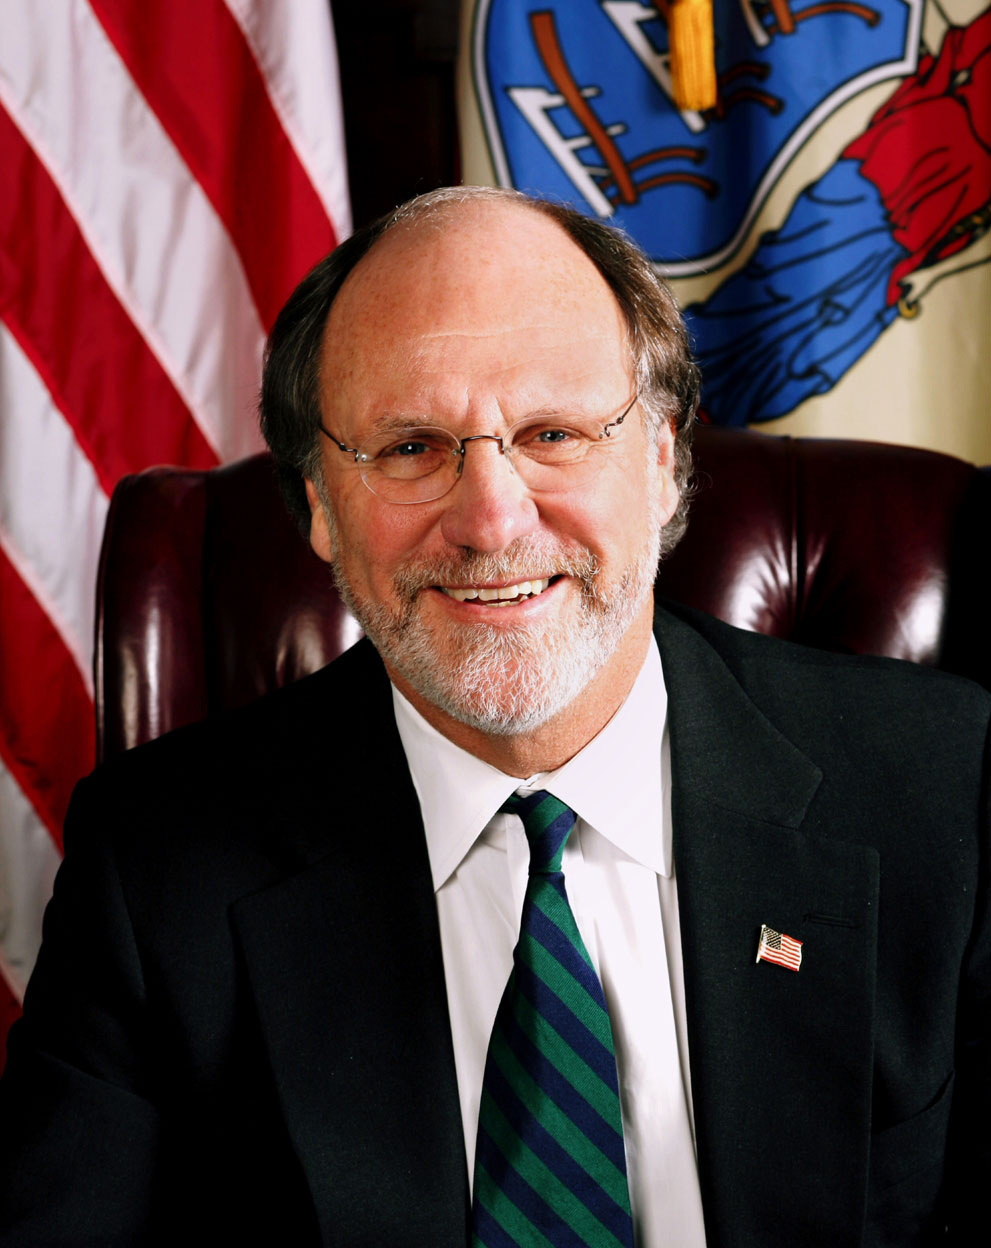 picture of Honorable Jon S. Corzine, Gov of NJ